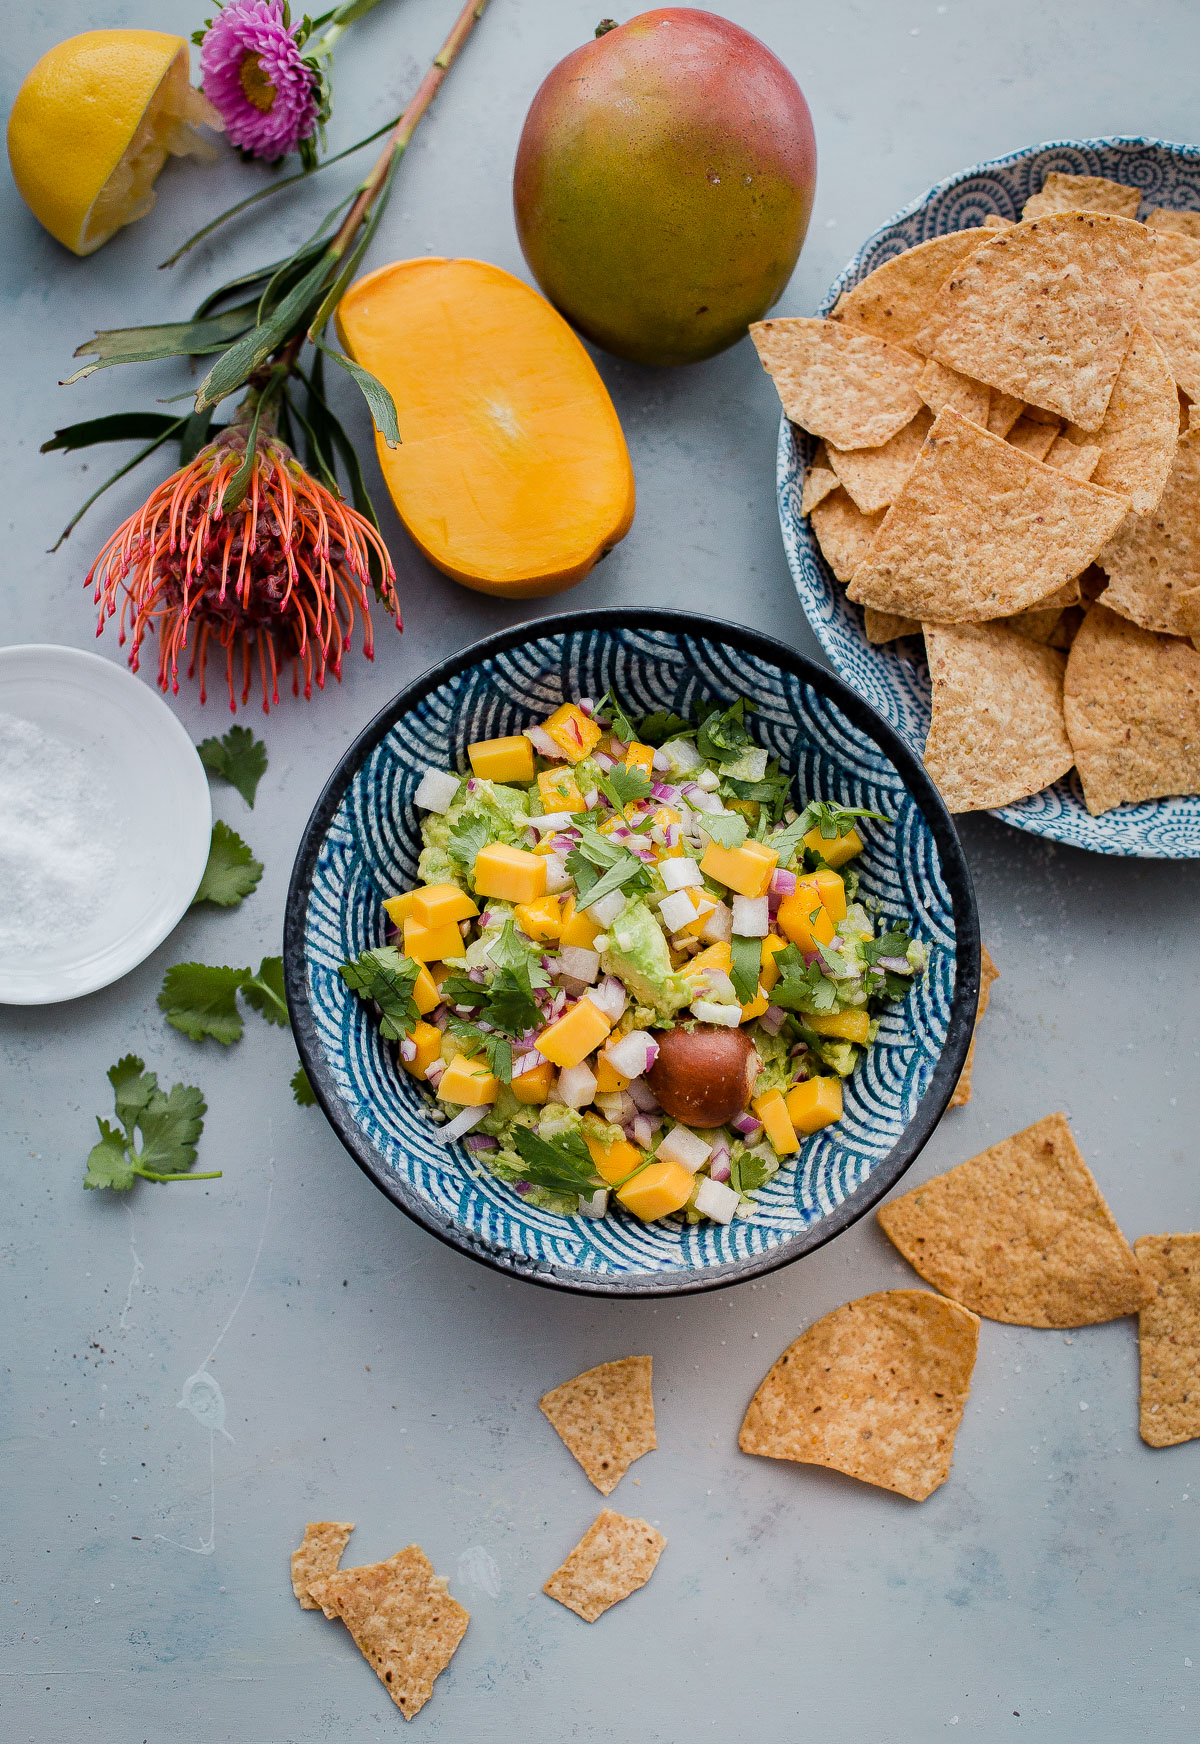 Tropical Mango Guacamole Traditional Guacamole Is Given A Tropical Twist  With Juicy Mango And Jicama